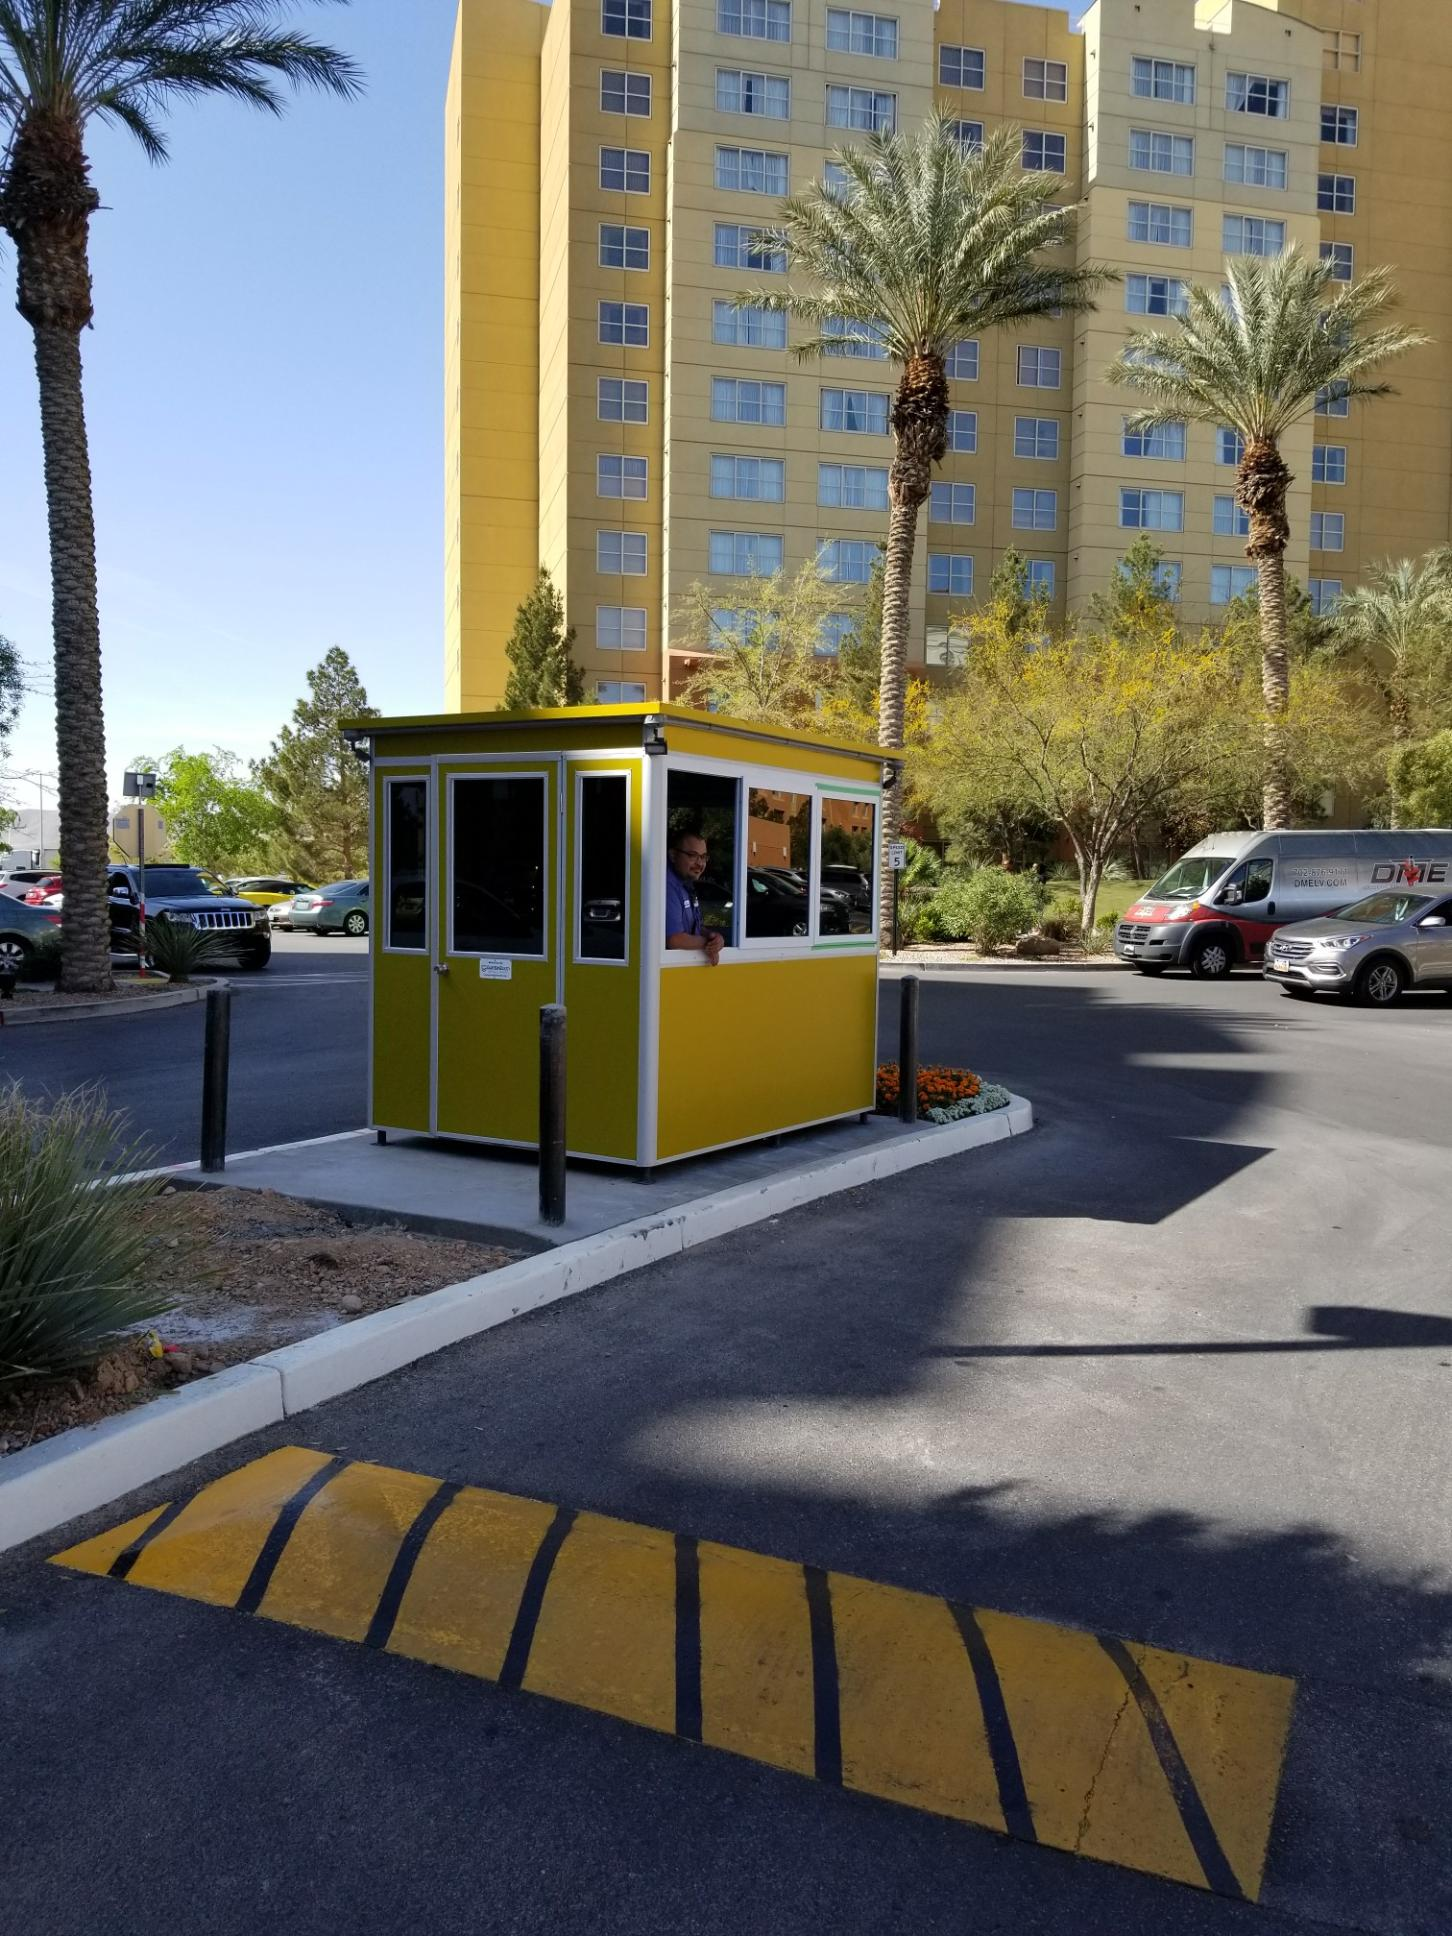 6x8 Entrance Gate Booth Las Vegas, NV with Custom Exterior Vinyl Wrap and Tinted Windows